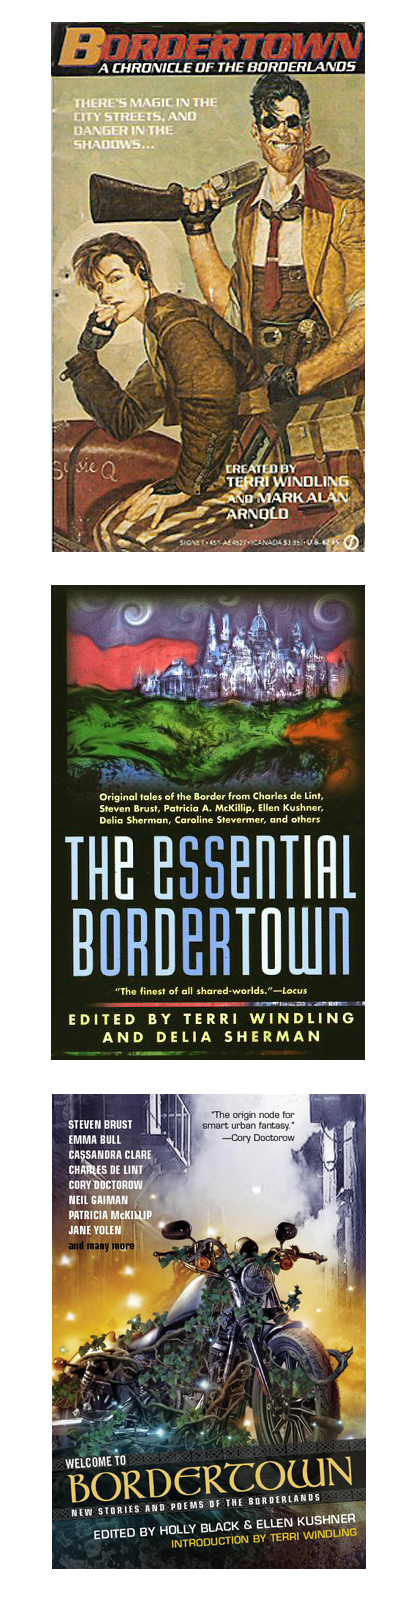 Bordertown, created by Terri Windling